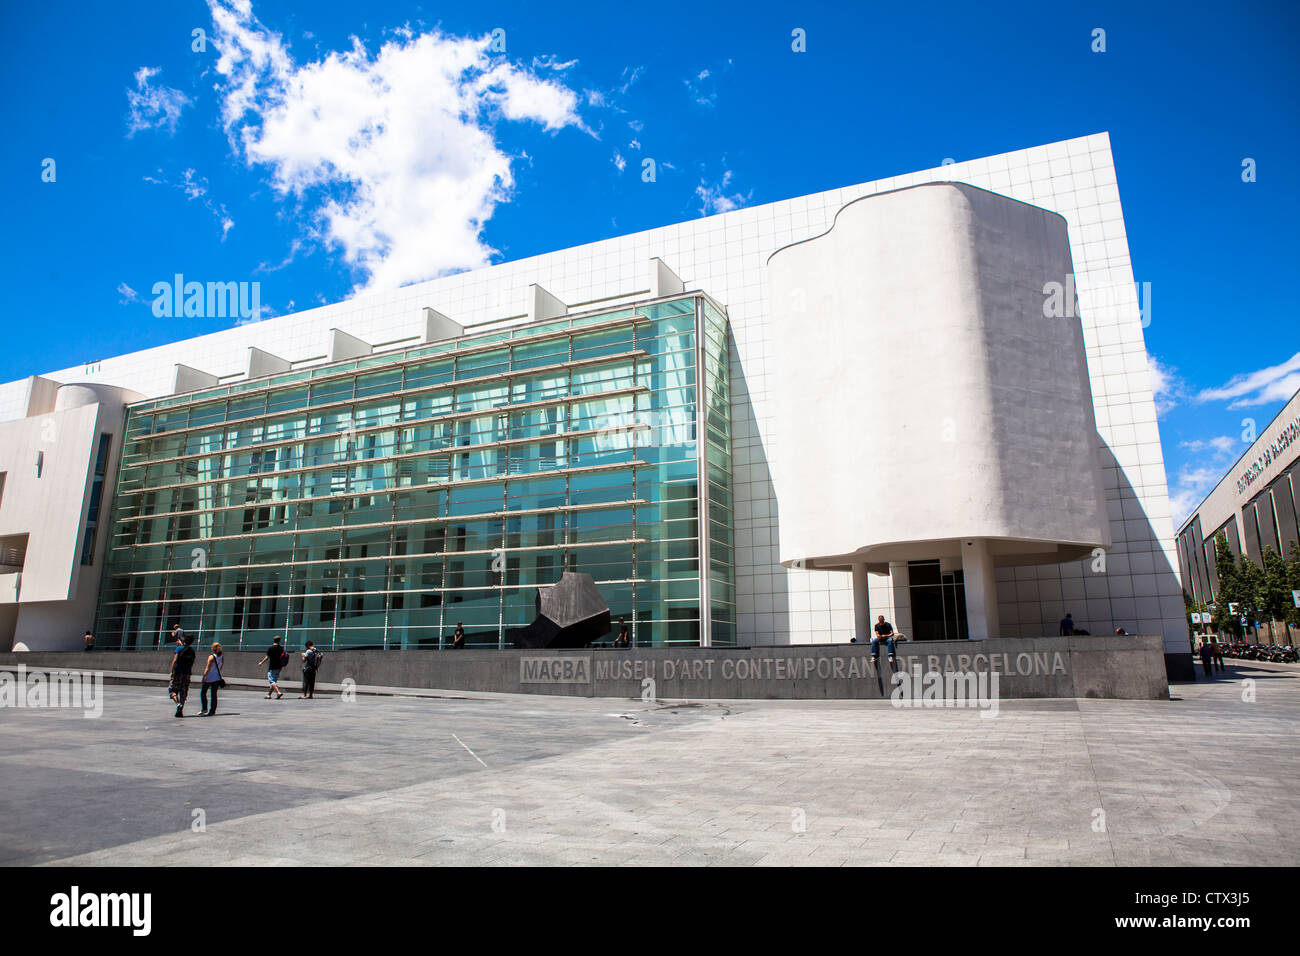 MACBA contemporary art Museum Barcelona Spain - Stock Image